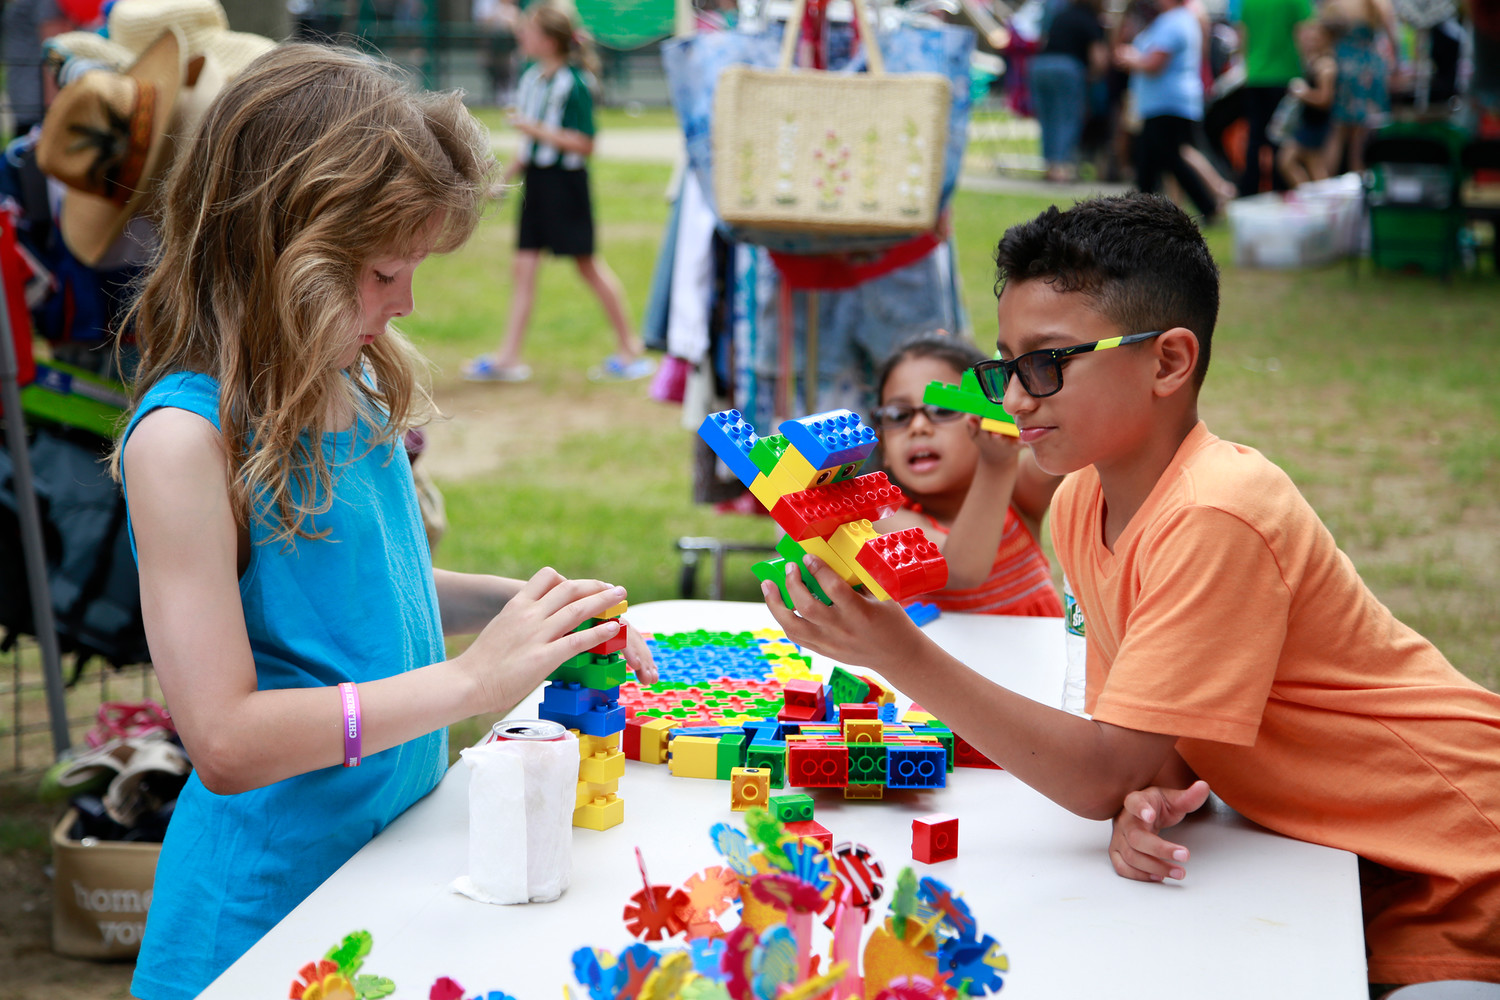 Thomas Schilling, right, Aden Alvarez and Maya Alvarez played with Legos at Memorial Park.